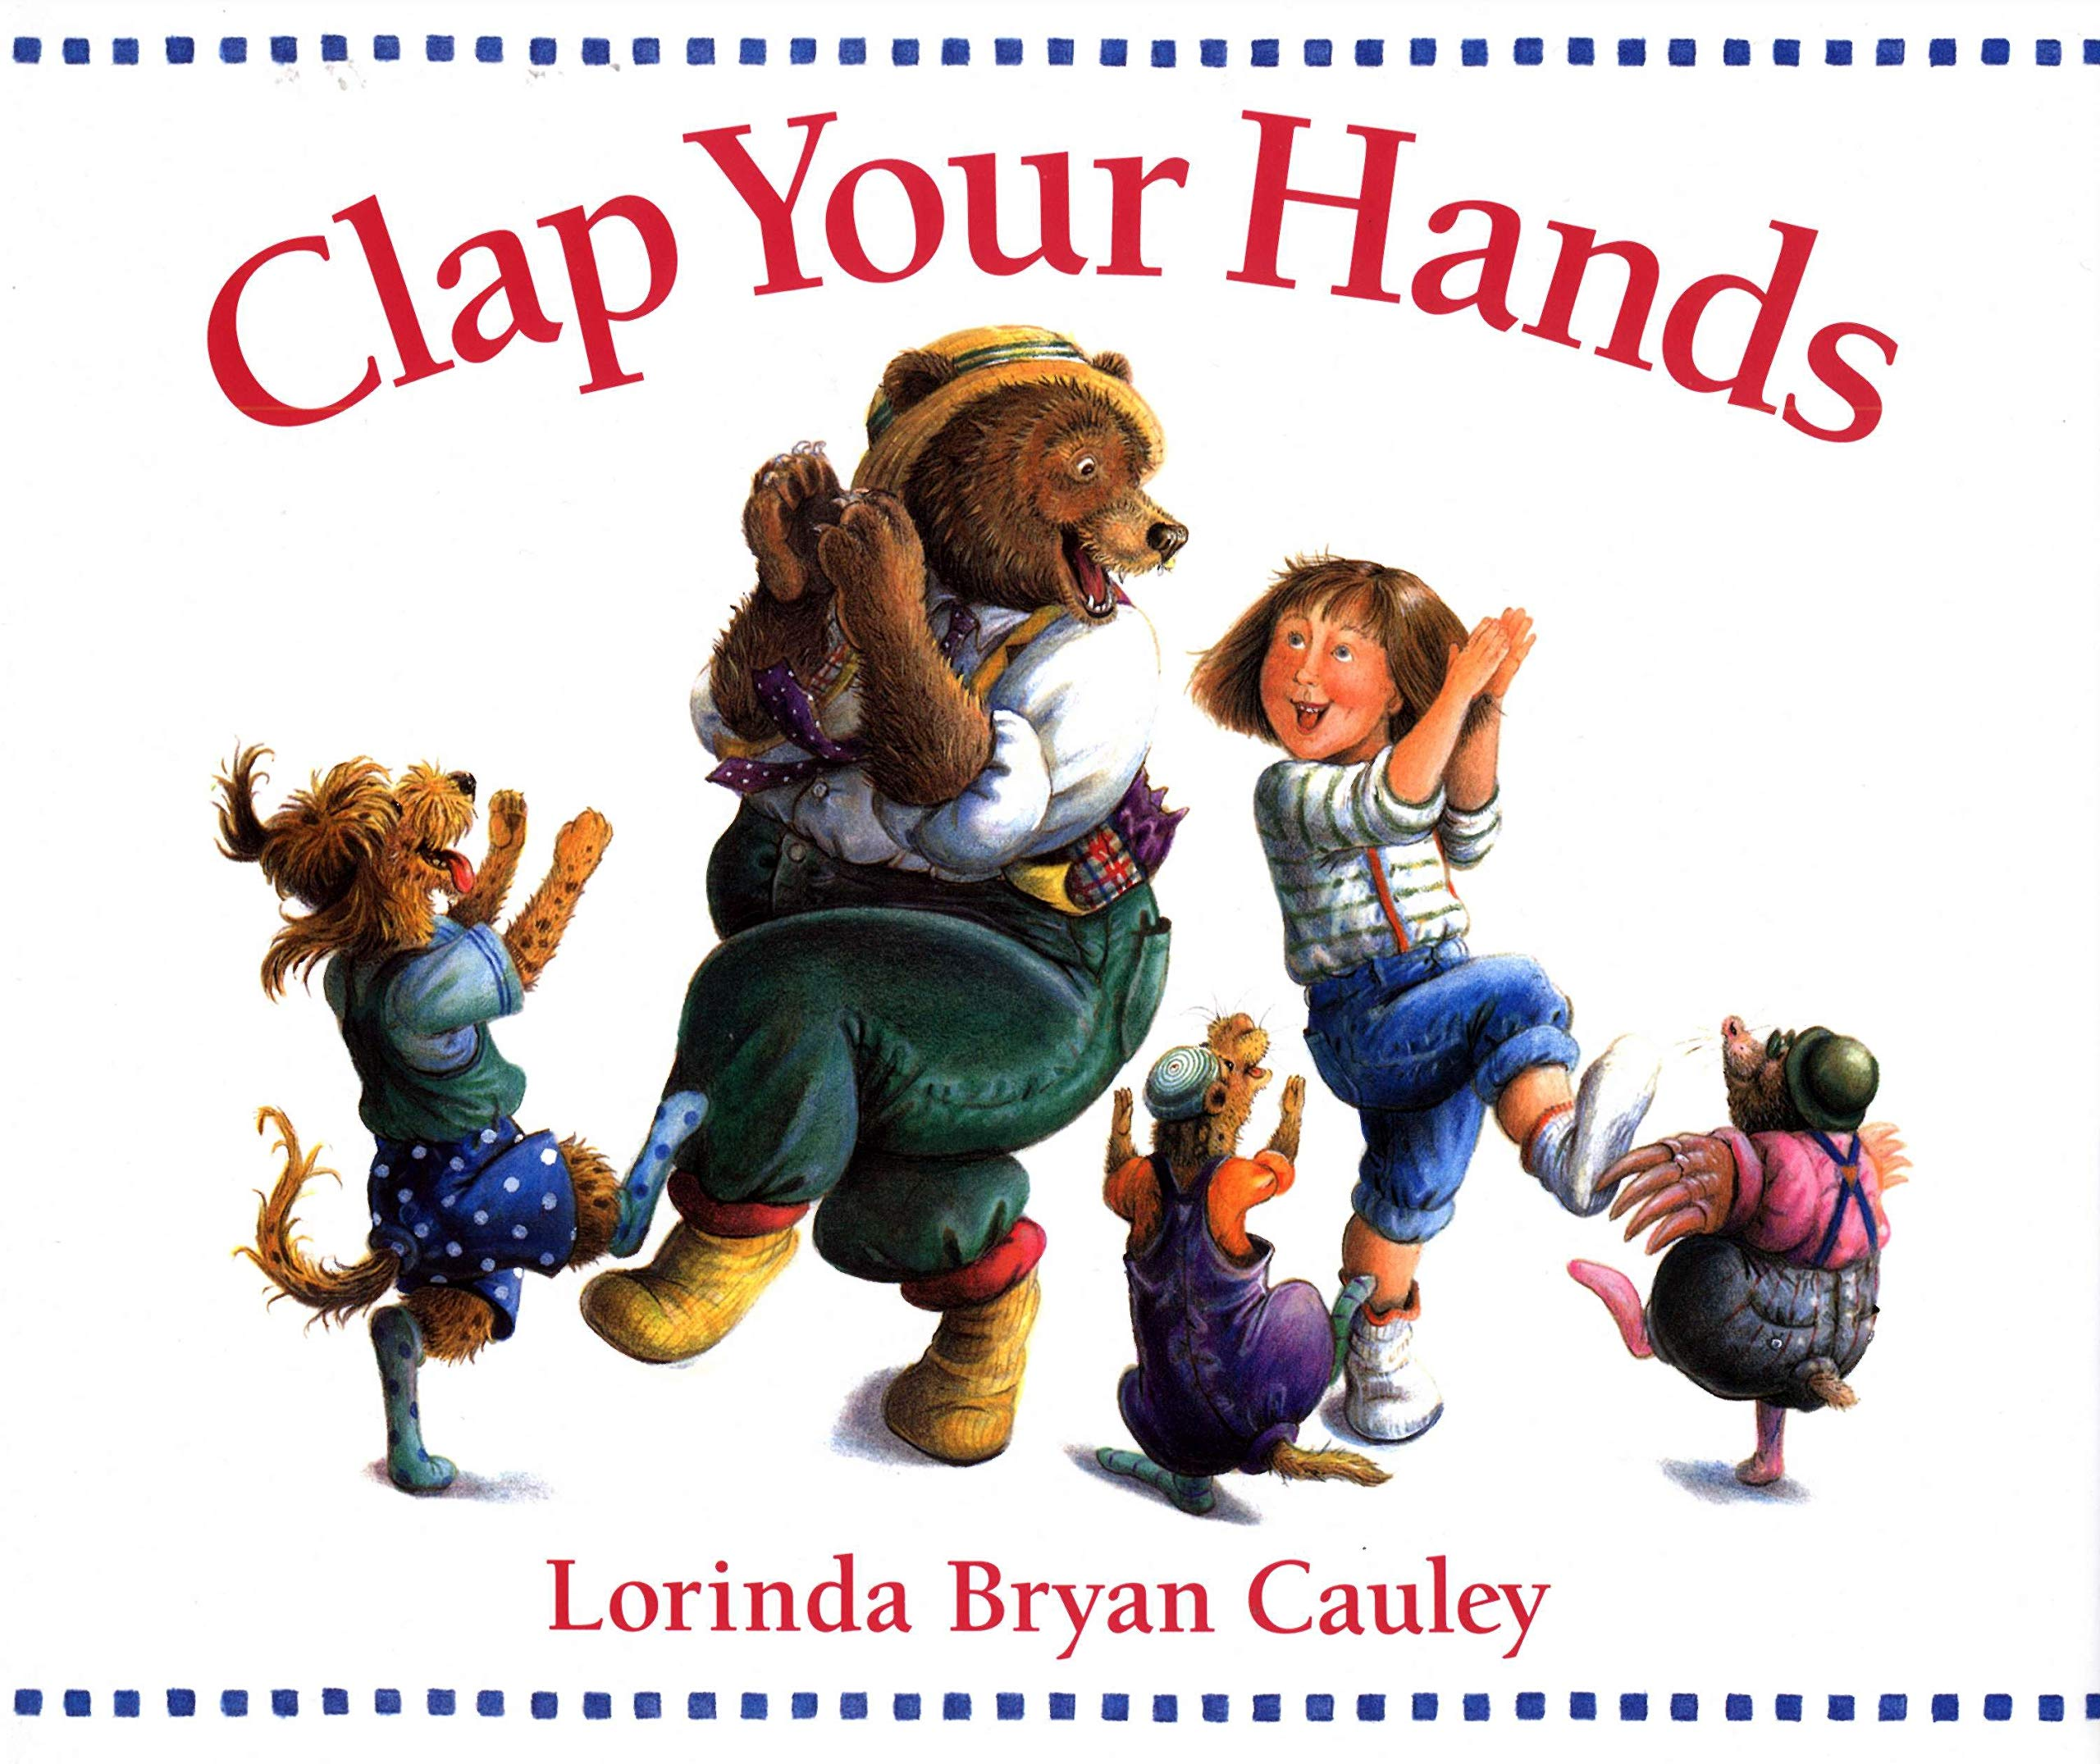 Amazon Com Clap Your Hands 9780399237102 Cauley Lorinda Bryan Books I made a hanger used insert. amazon com clap your hands